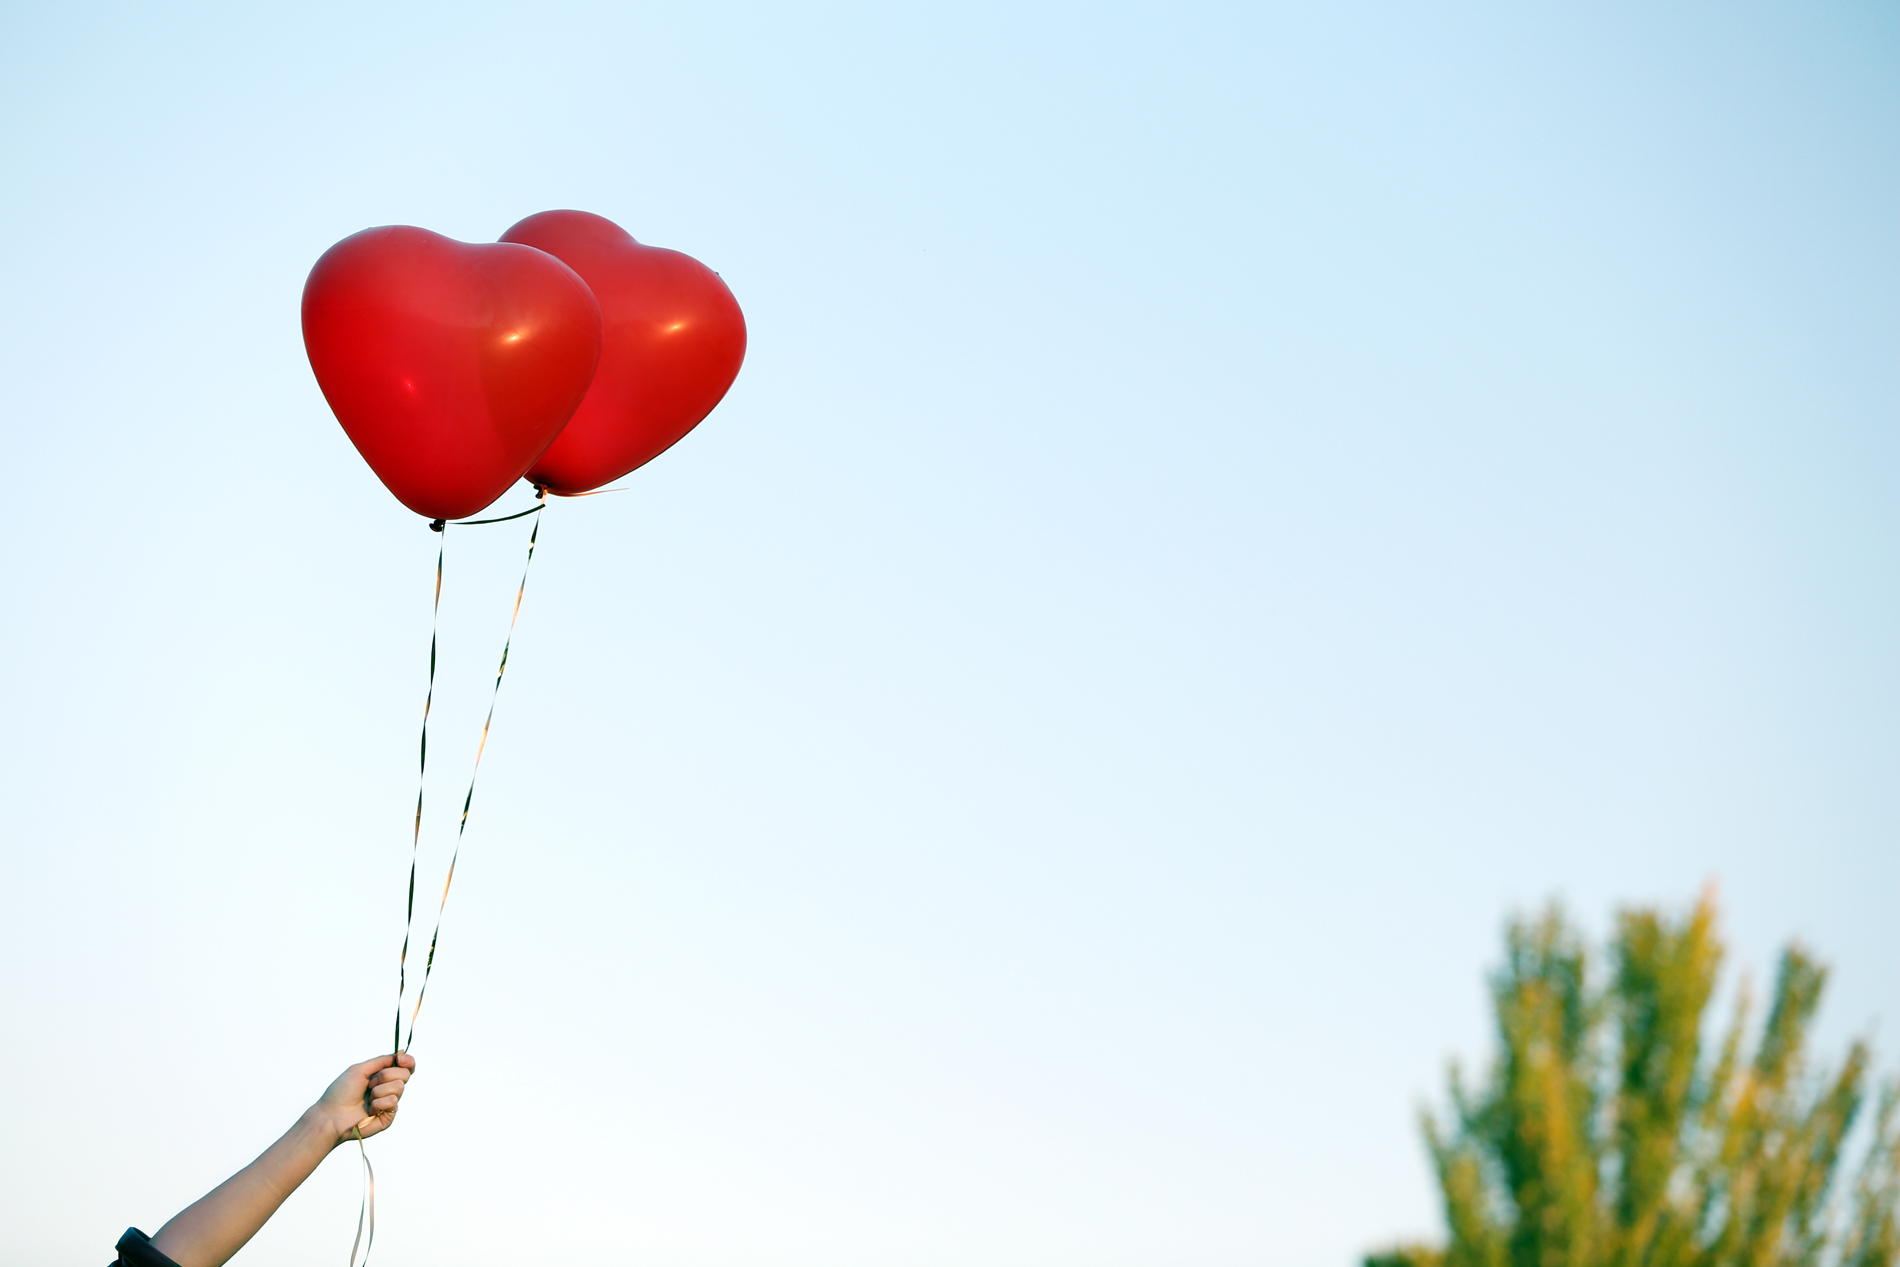 In the hands of the red heart-shaped balloons 52876